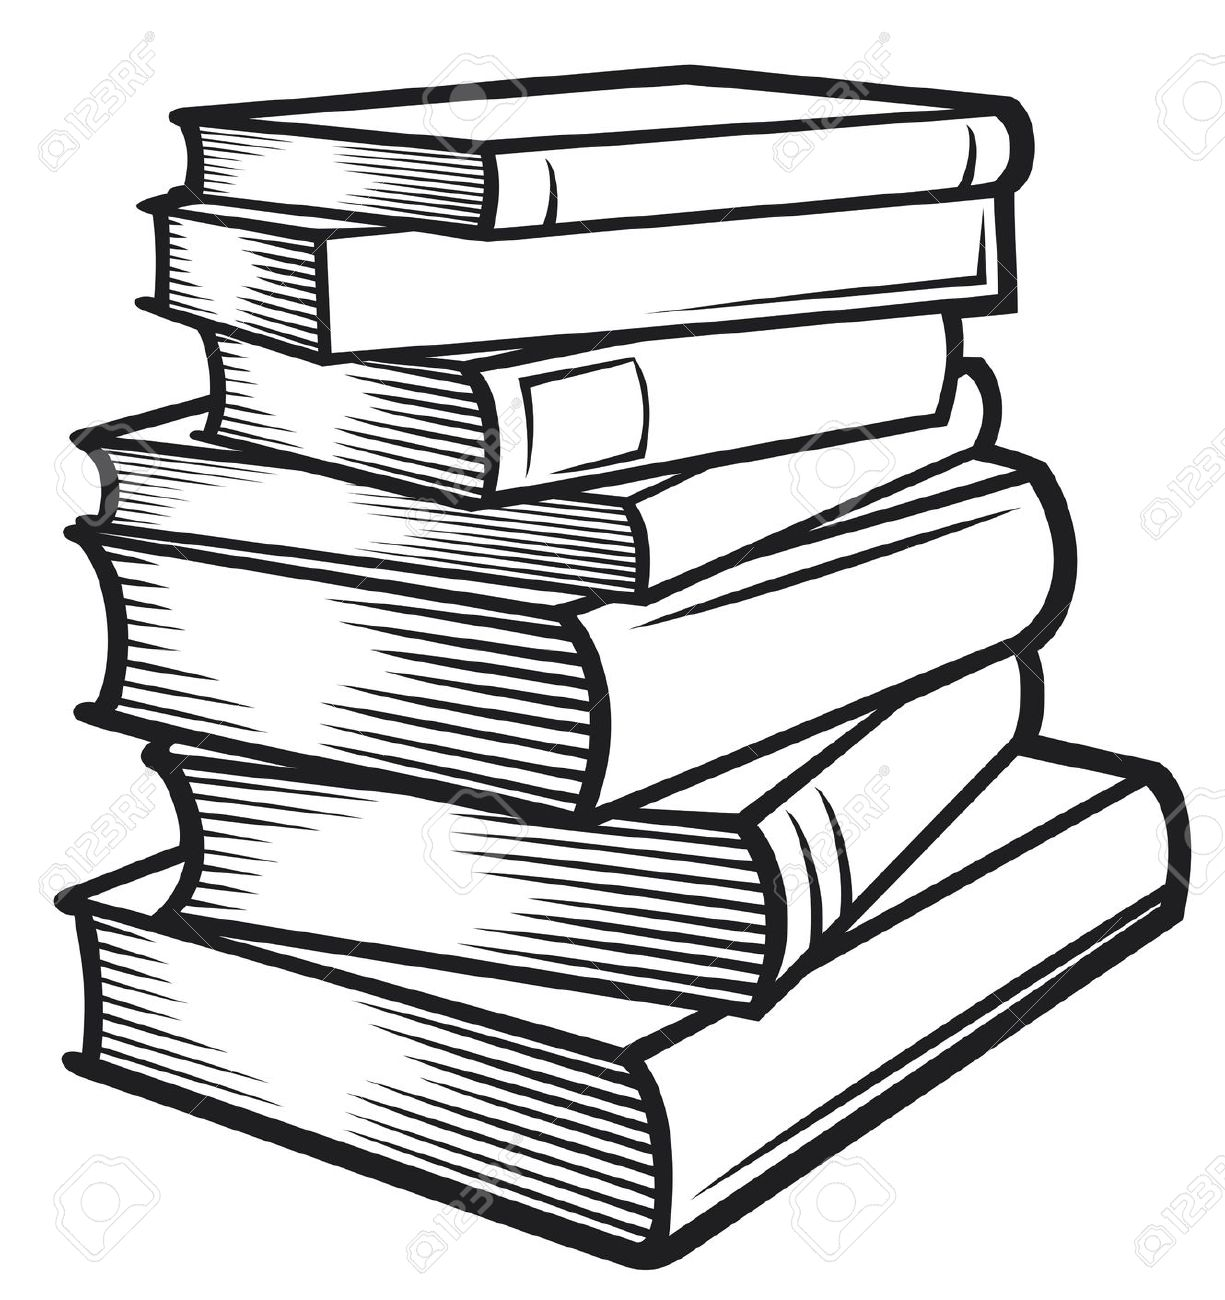 Best book clipartion com. Textbook clipart black and white